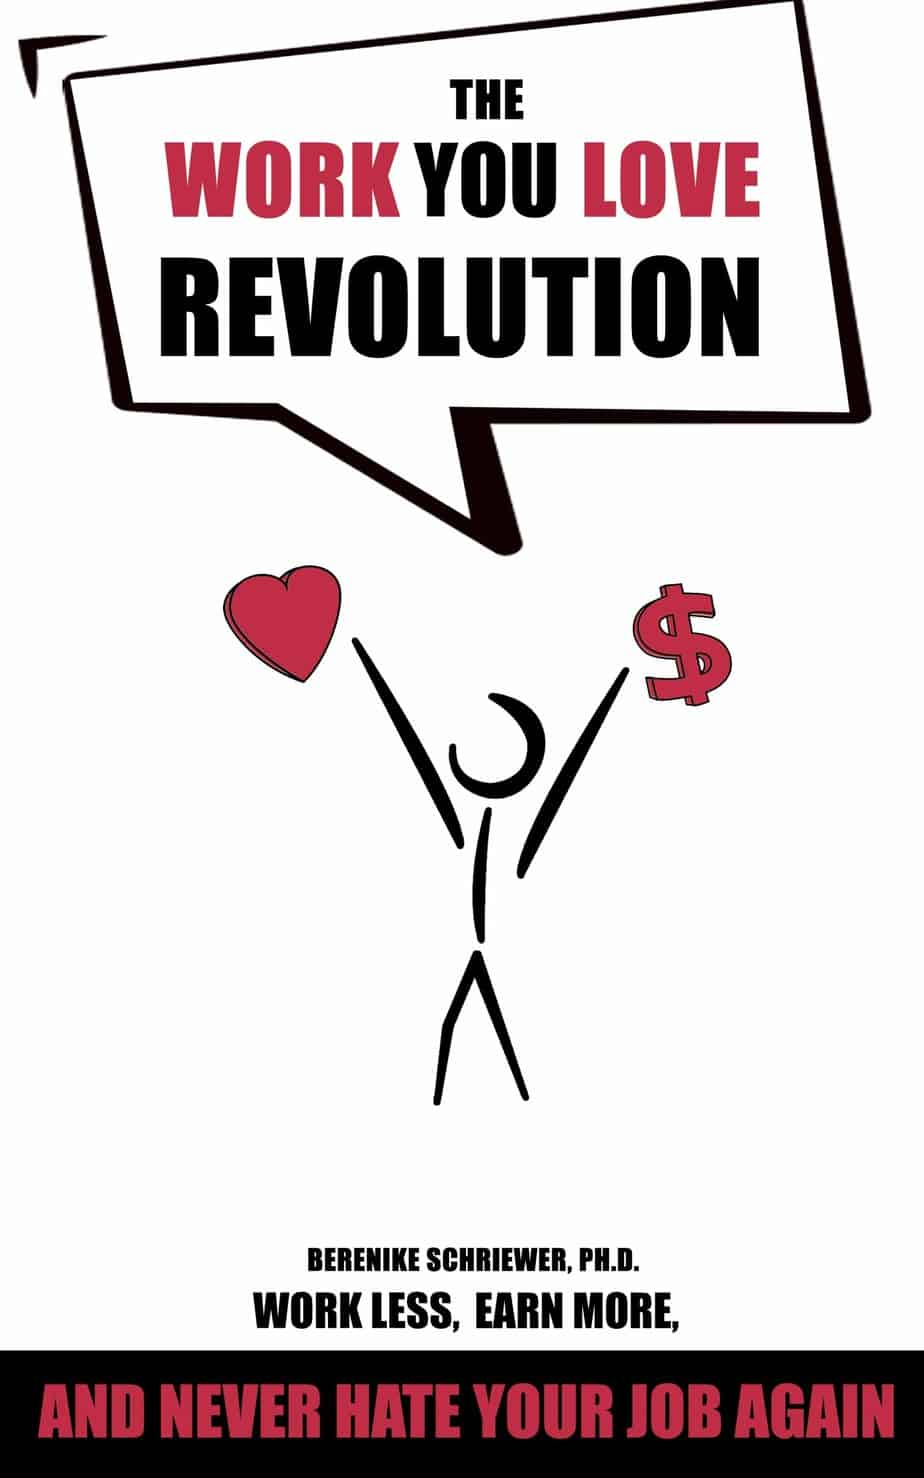 The Work You Love Revolution